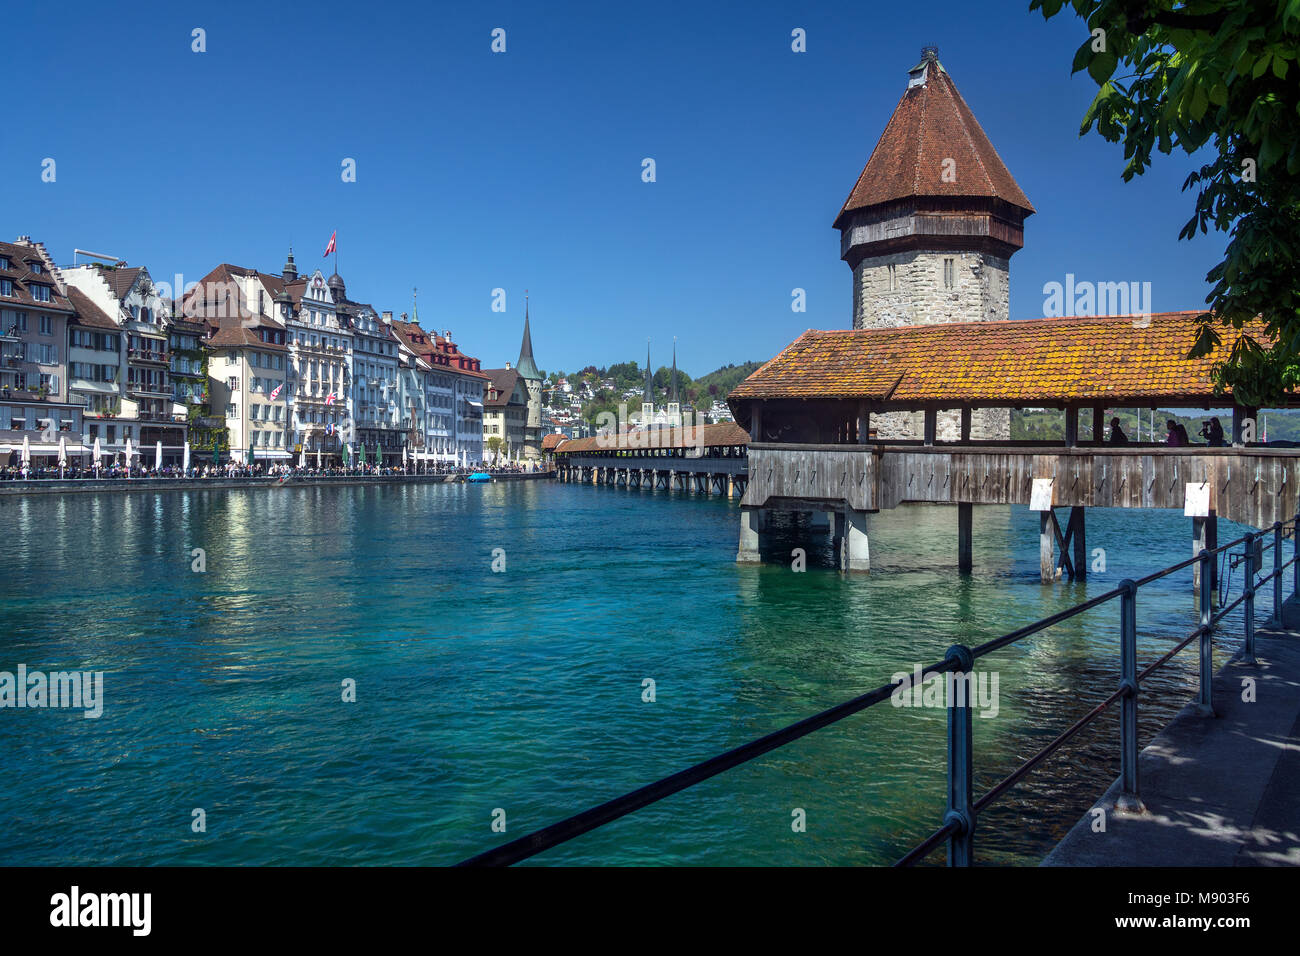 Chapel Bridge - a 14th century covered wooden footbridge that spans the Reuss in the city of Luzern (Lucerne) in - Stock Image